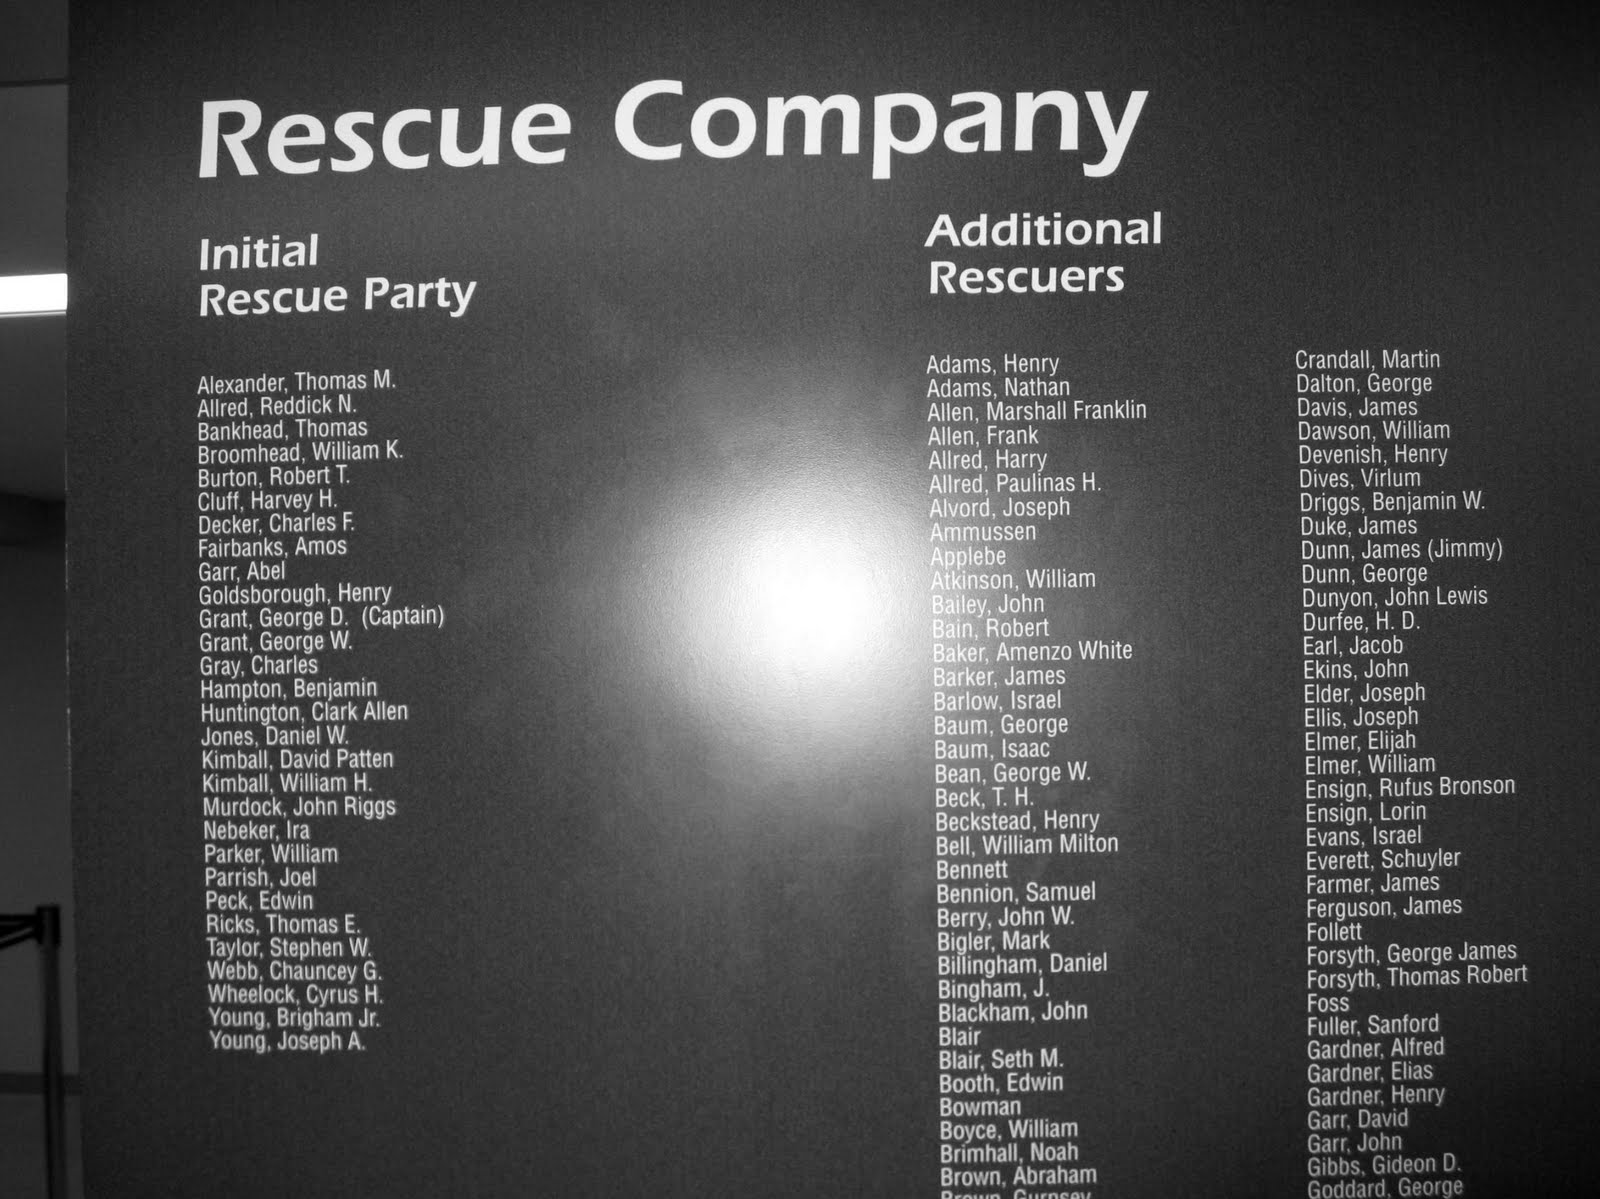 List of names of all the rescuers